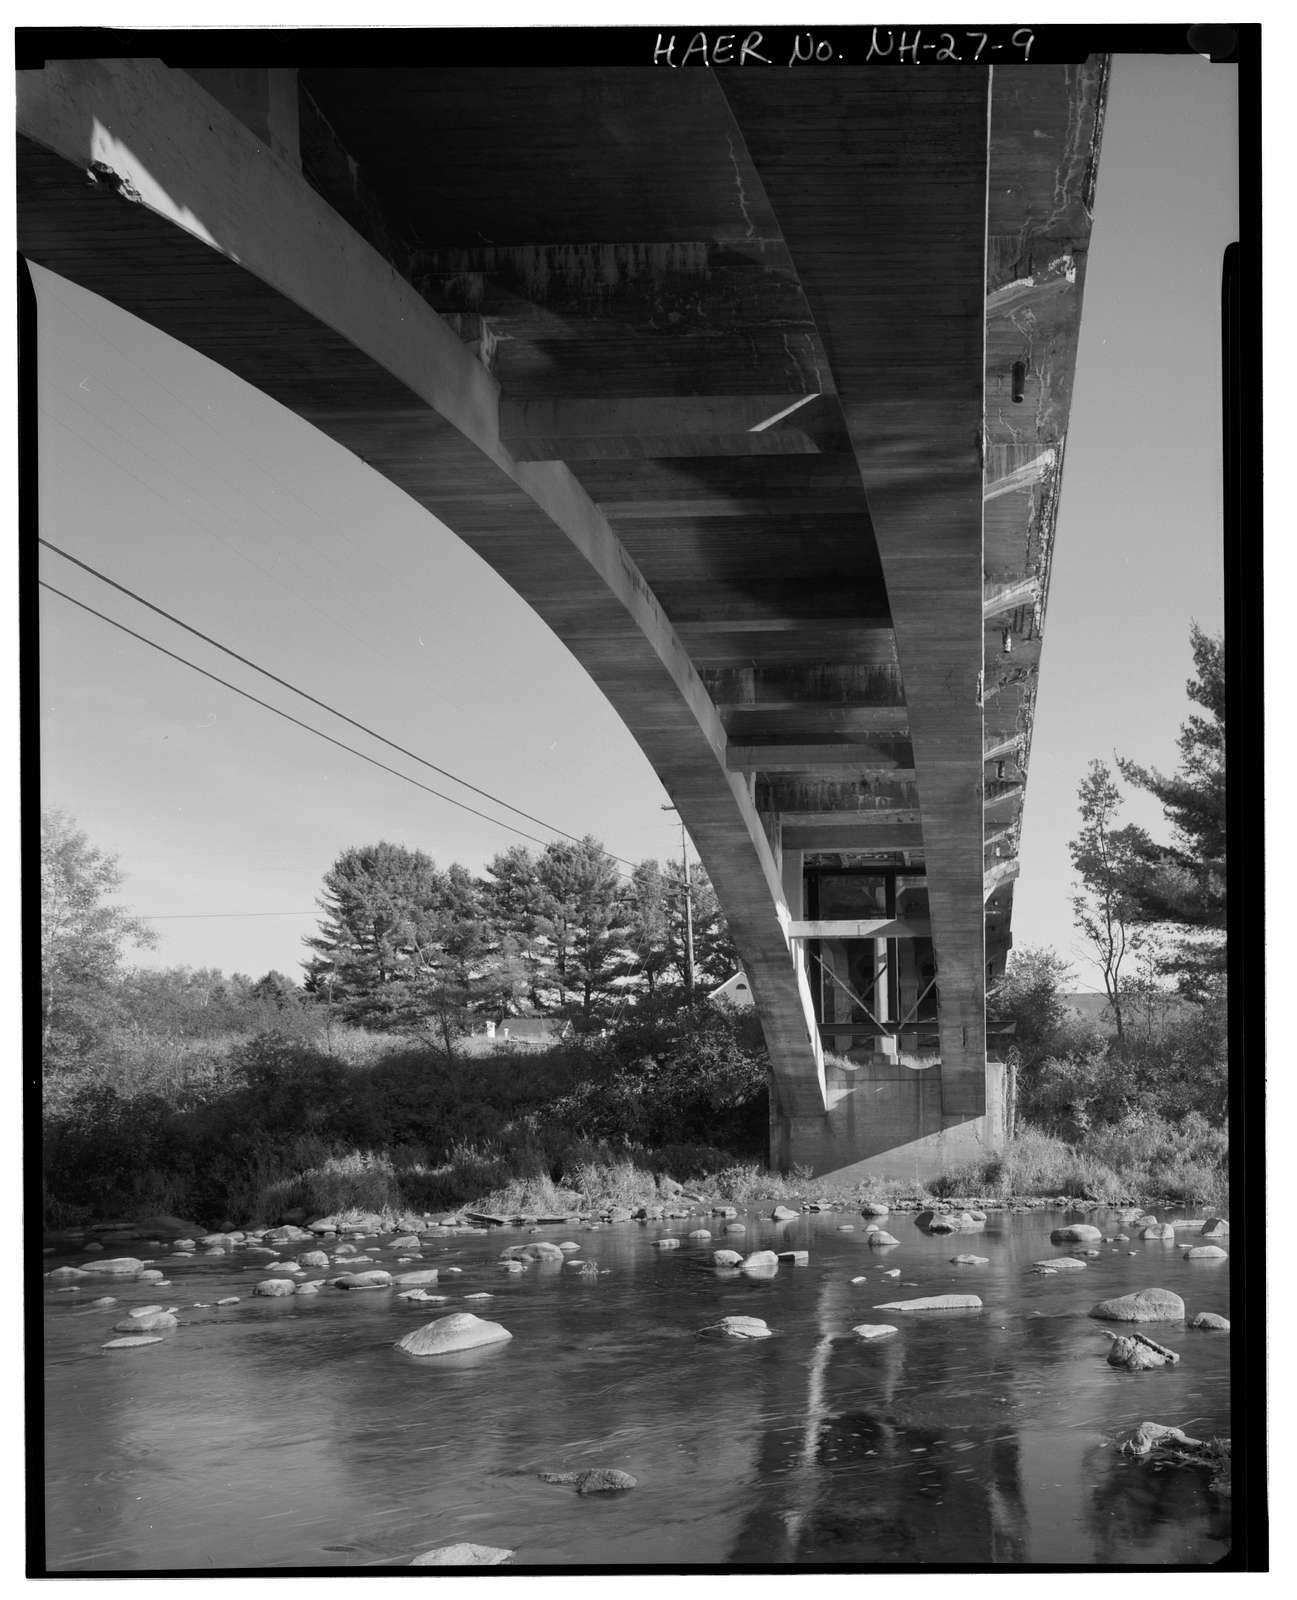 Kelleyville Bridge, Spanning Sugar River at State Route11/103, Newport, Sullivan County, NH